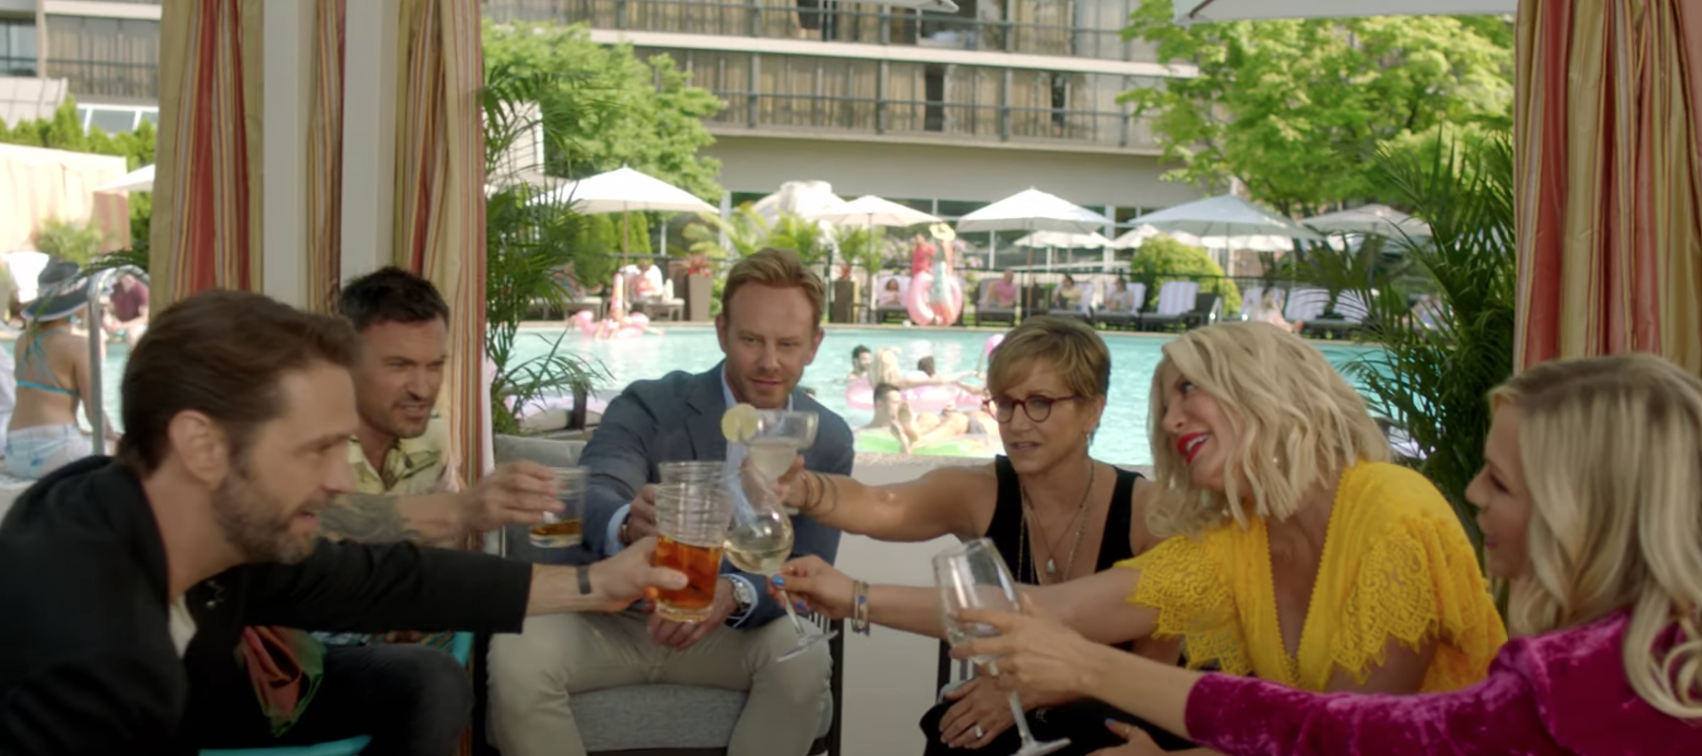 90210' Reboot: What to Know About the Cast, Premiere Date, Spoilers